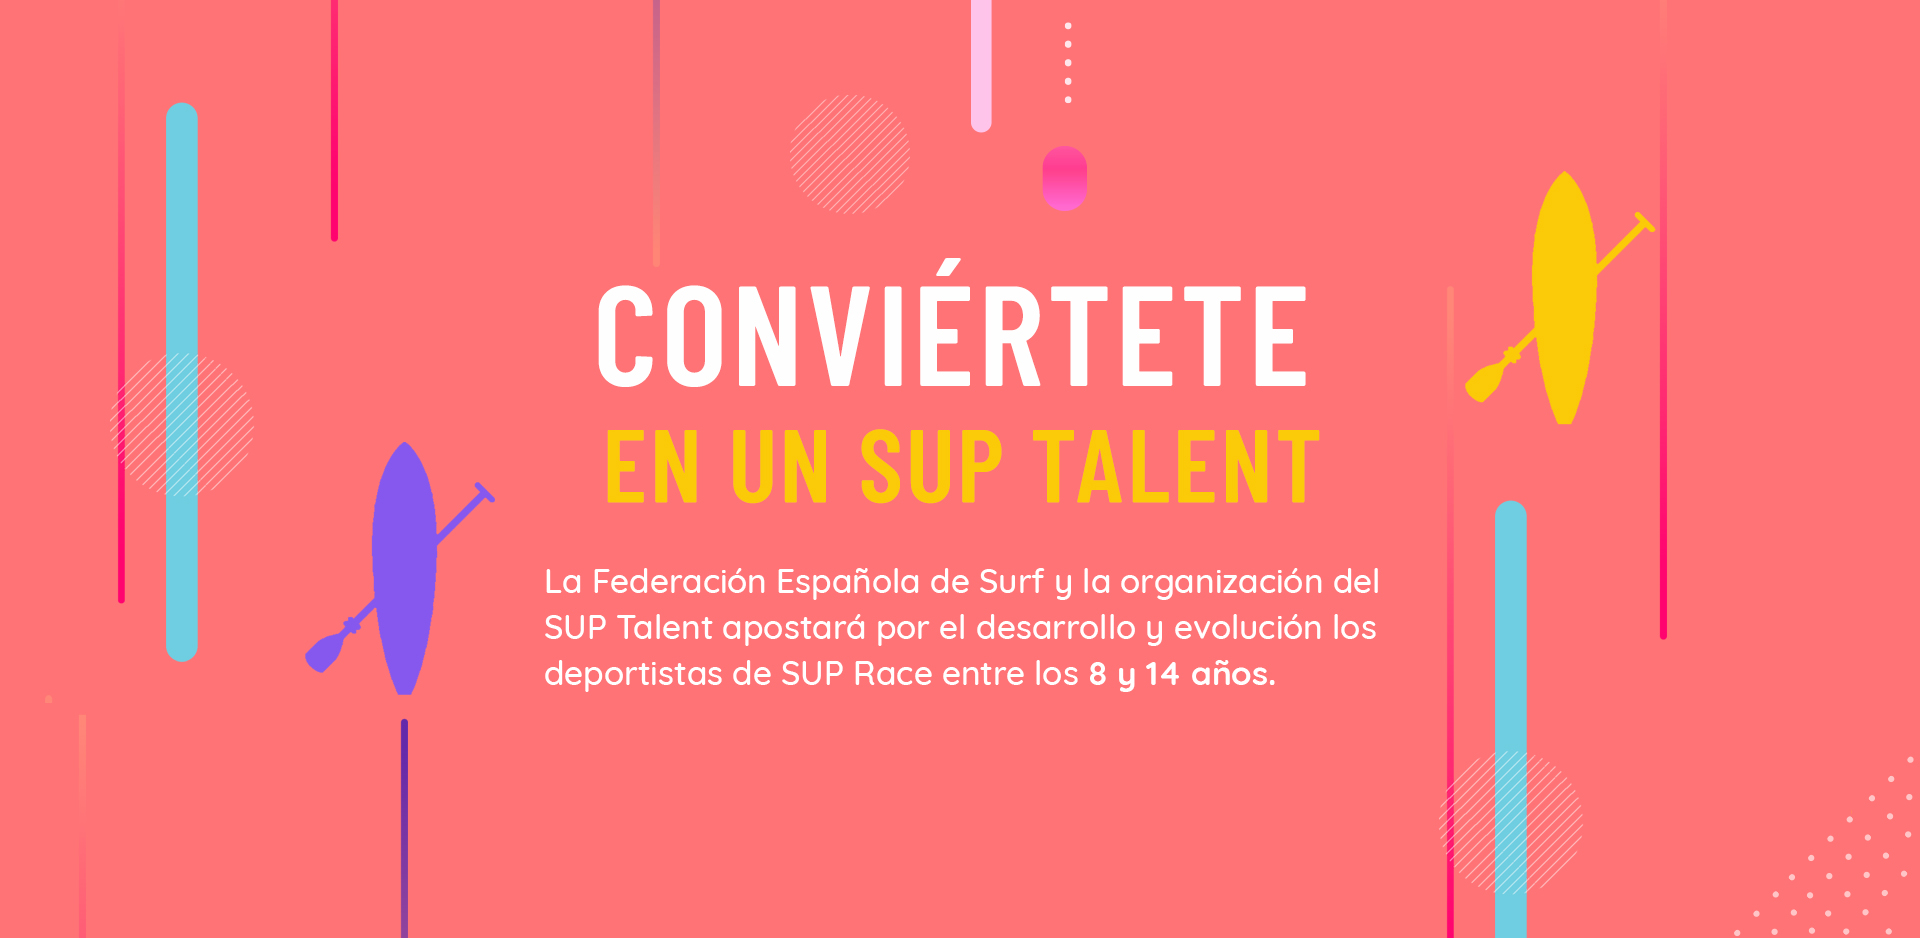 suptalent spain series inscripciones